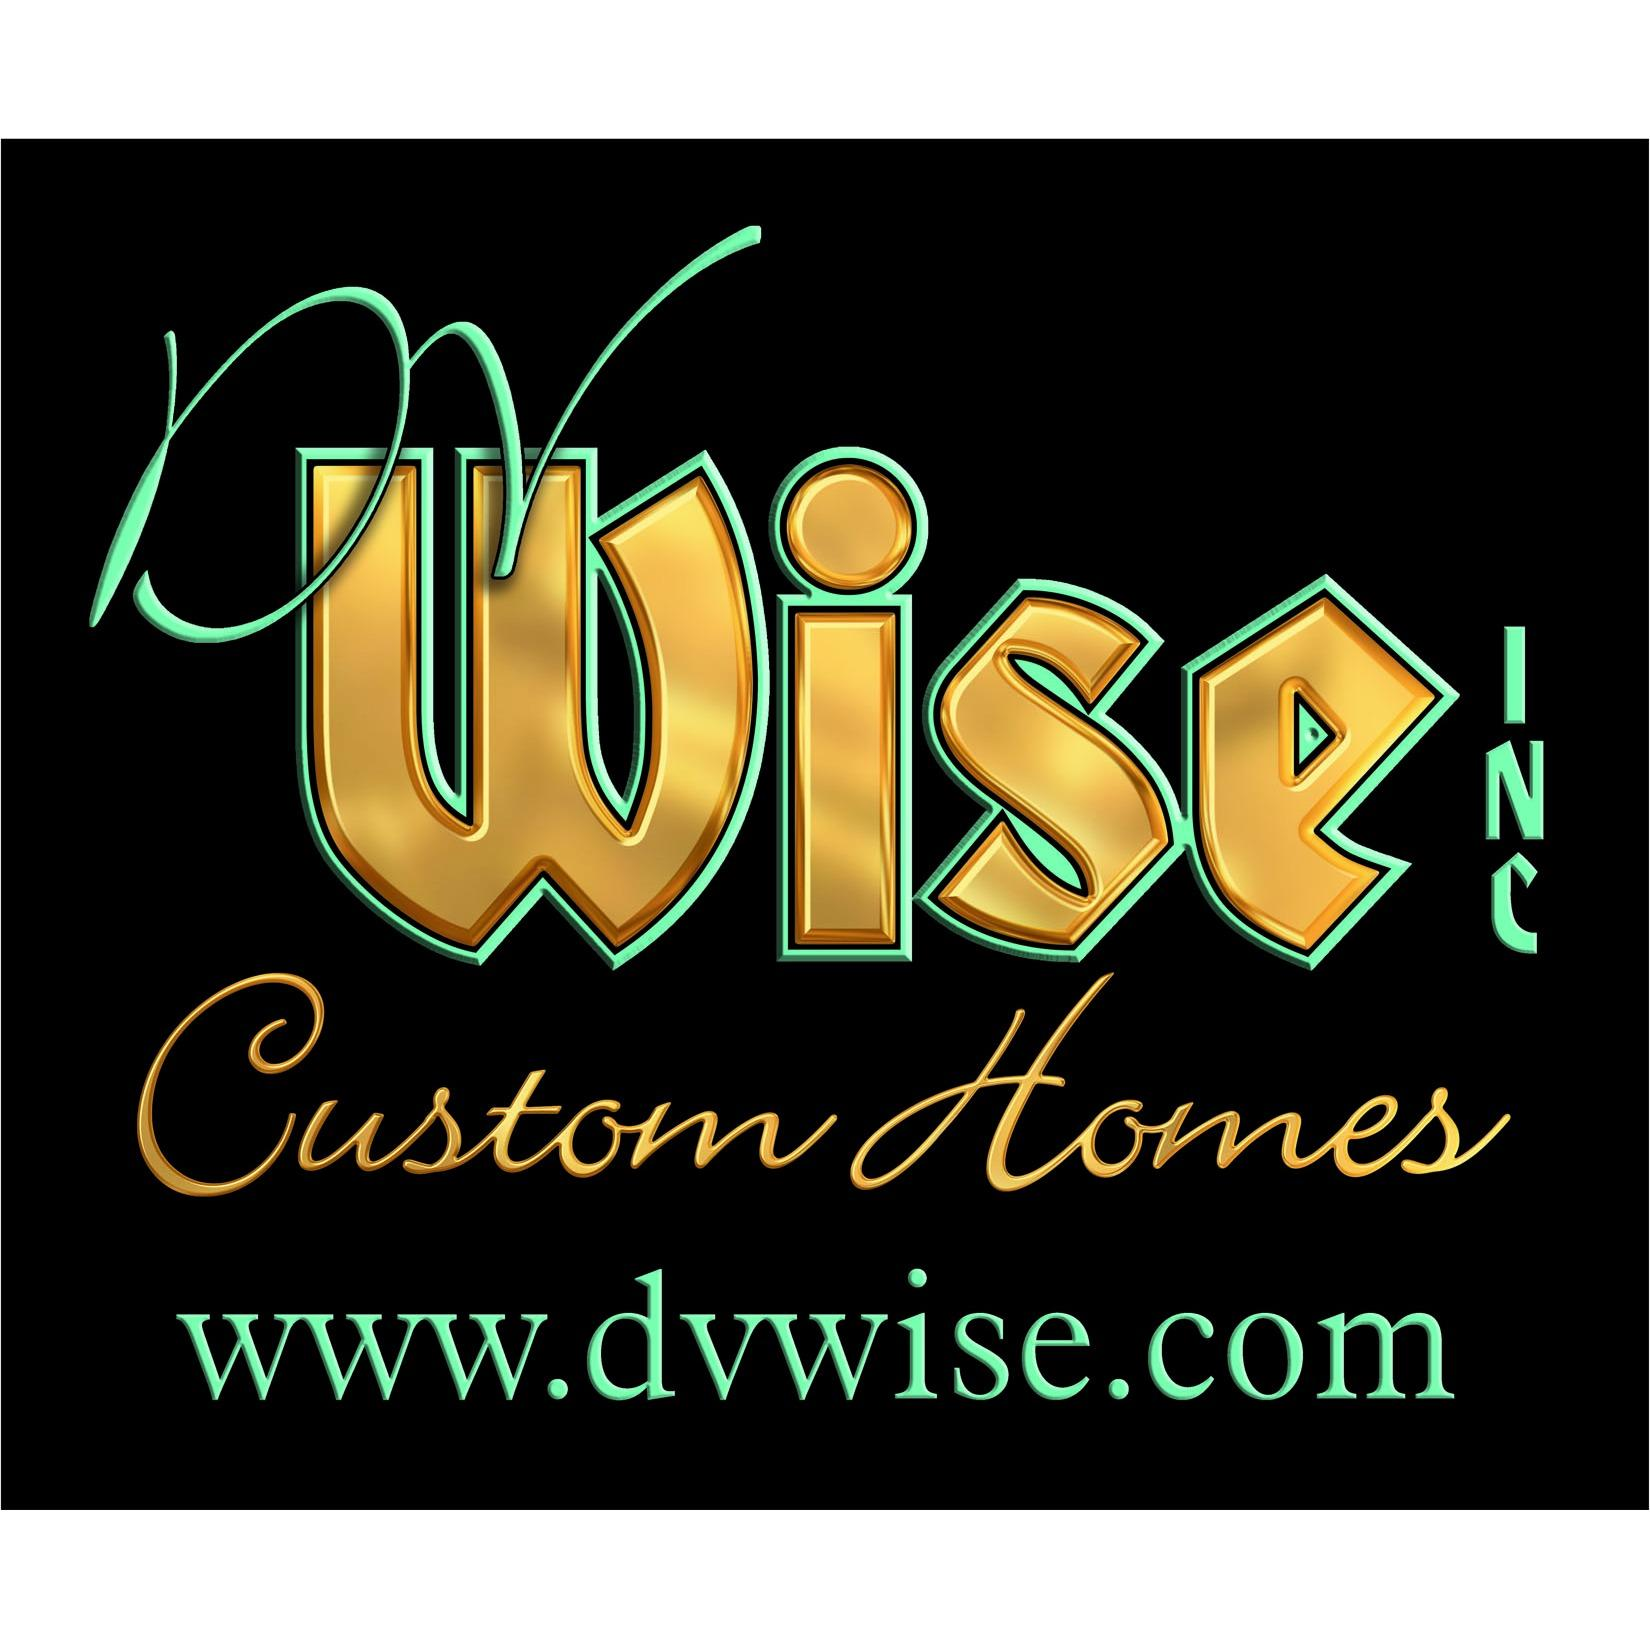 DV Wise Inc